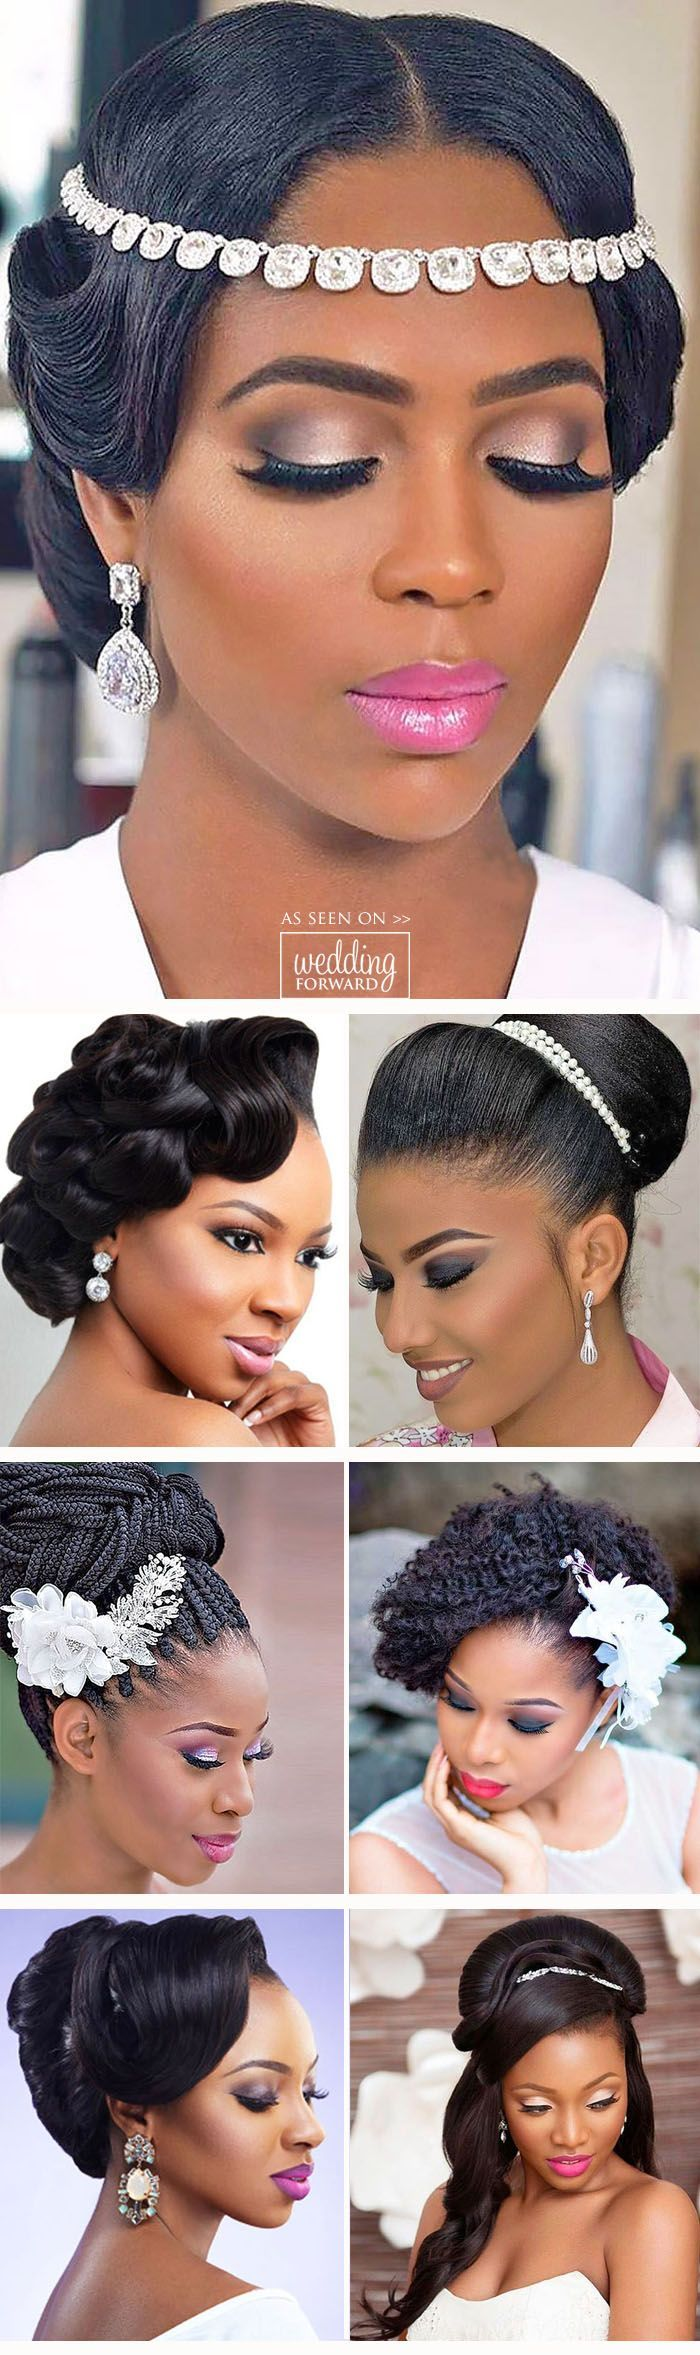 Makeup & Hair Ideas: 24 Black Women Wedding Hairstyles It is not a difficult task to pick the sui